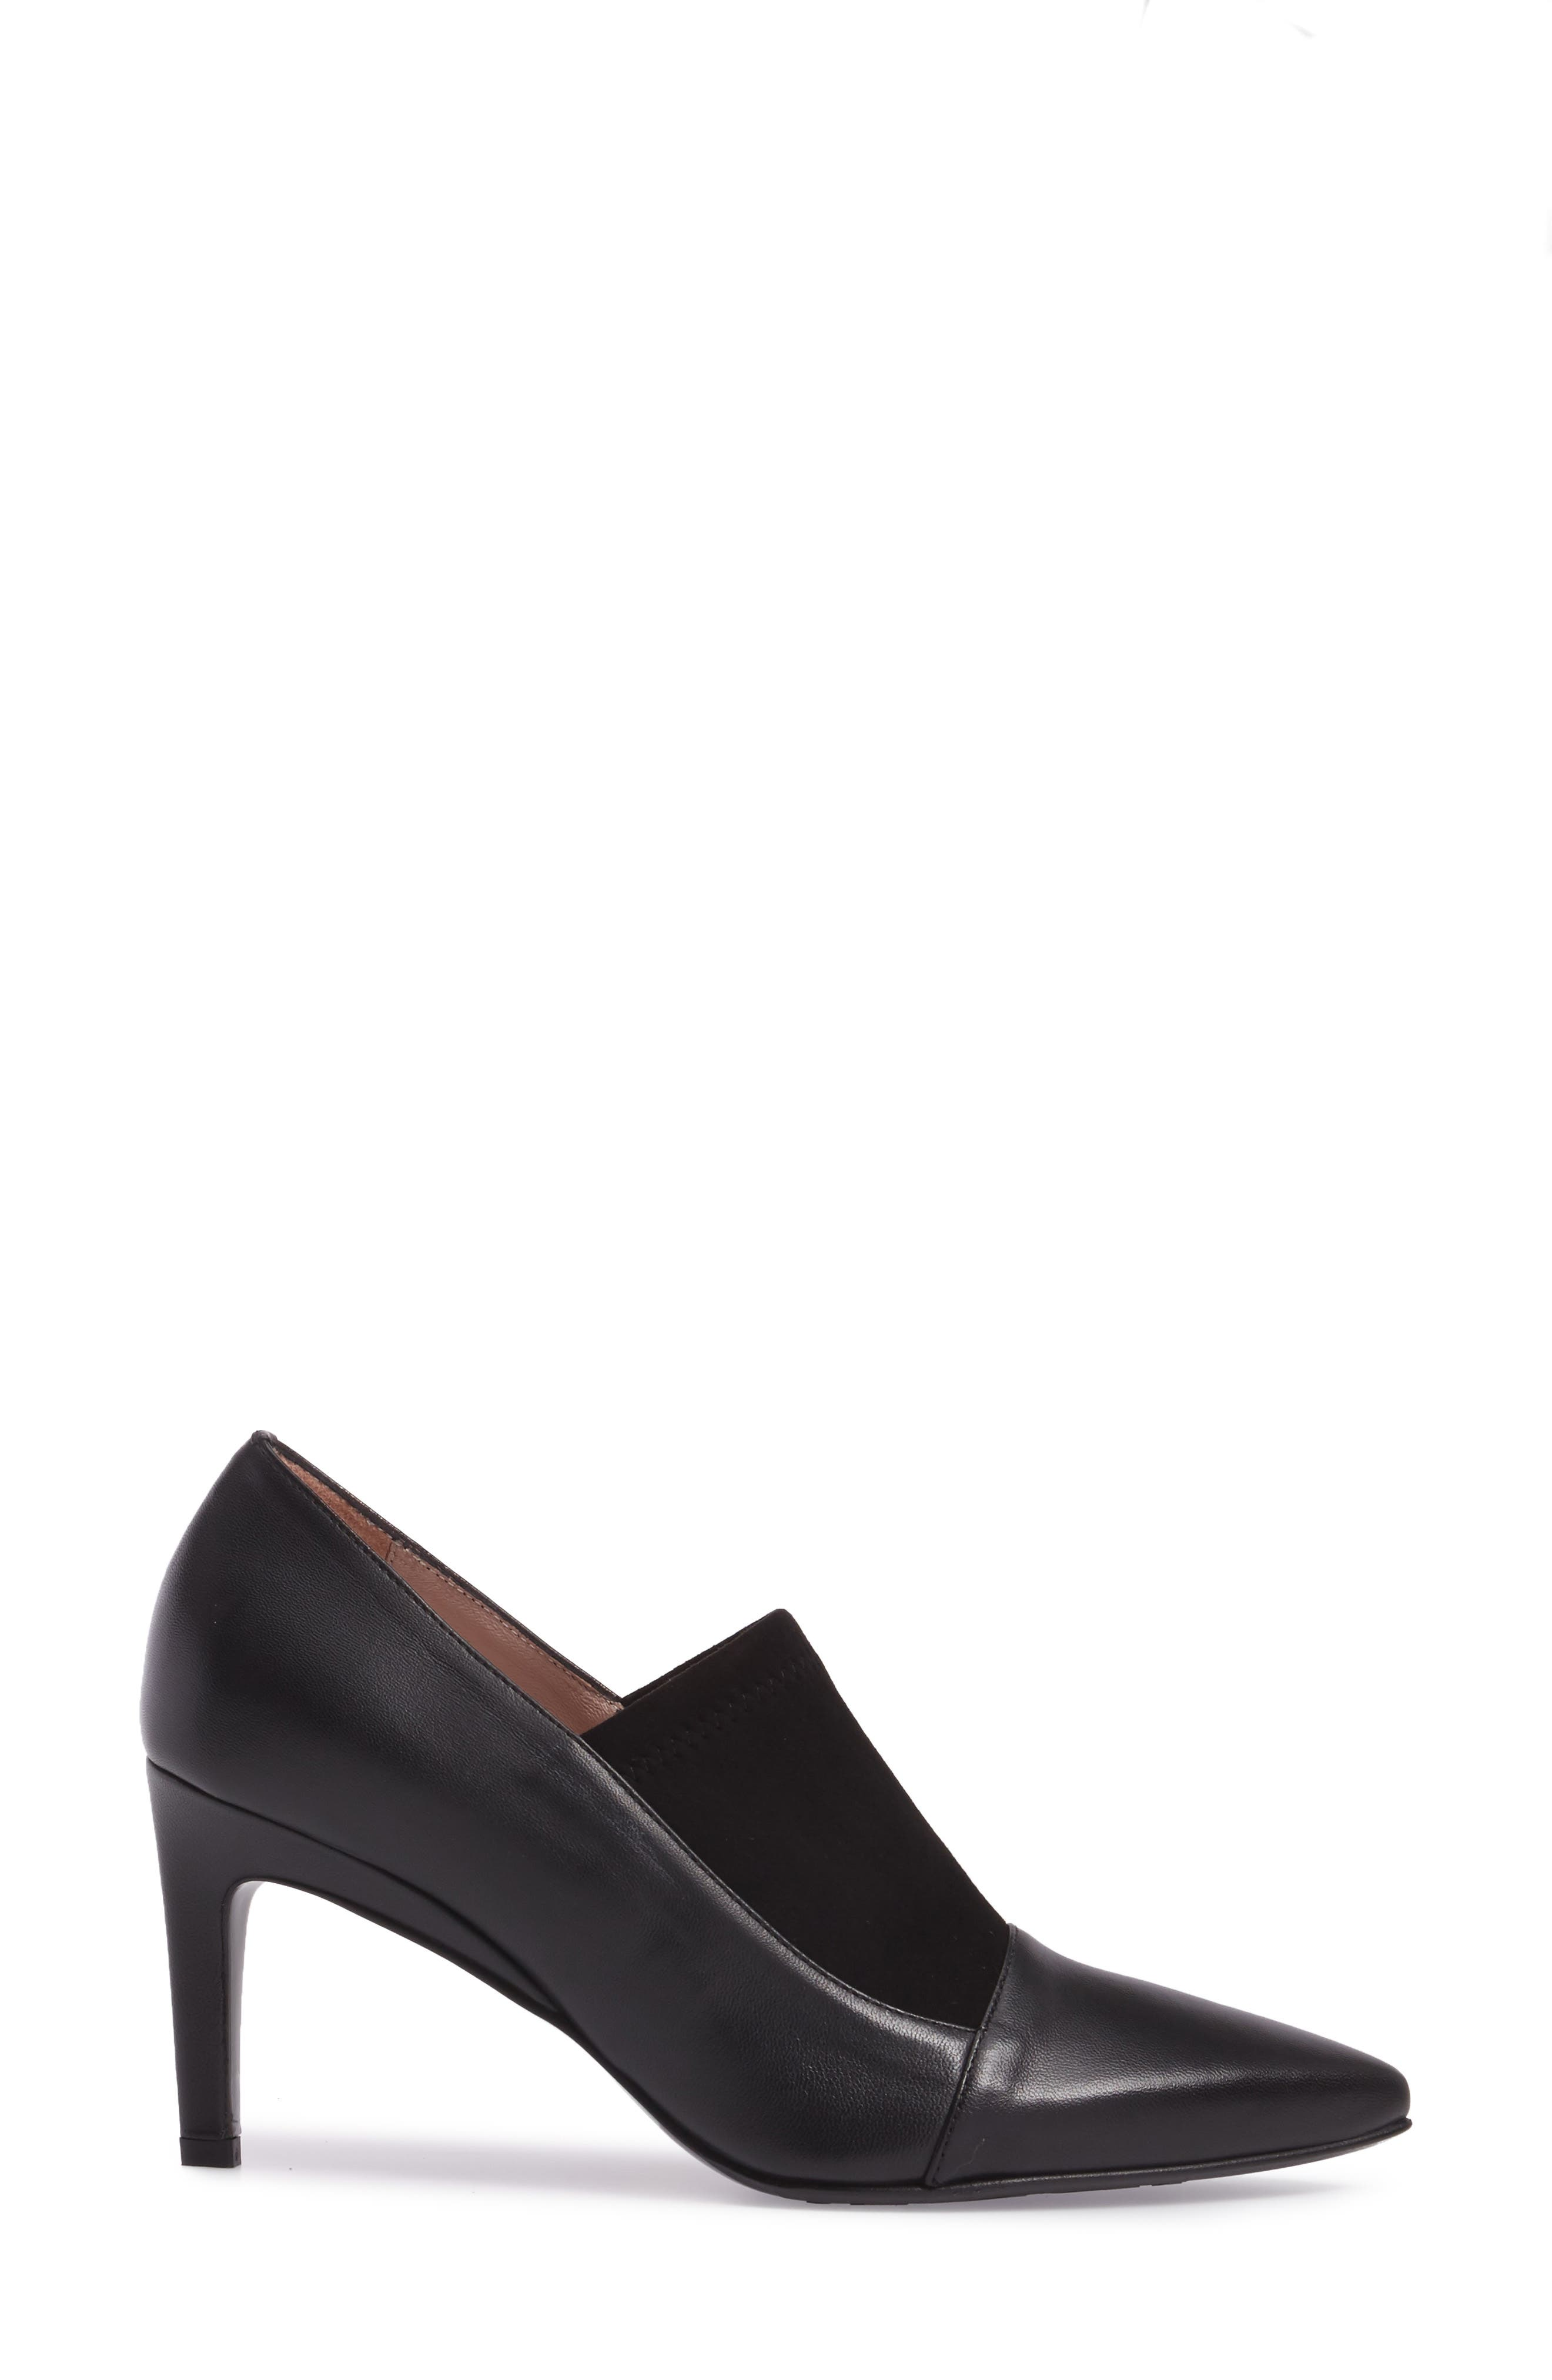 Ghita Pointy Toe Pump,                             Alternate thumbnail 3, color,                             Black Leather